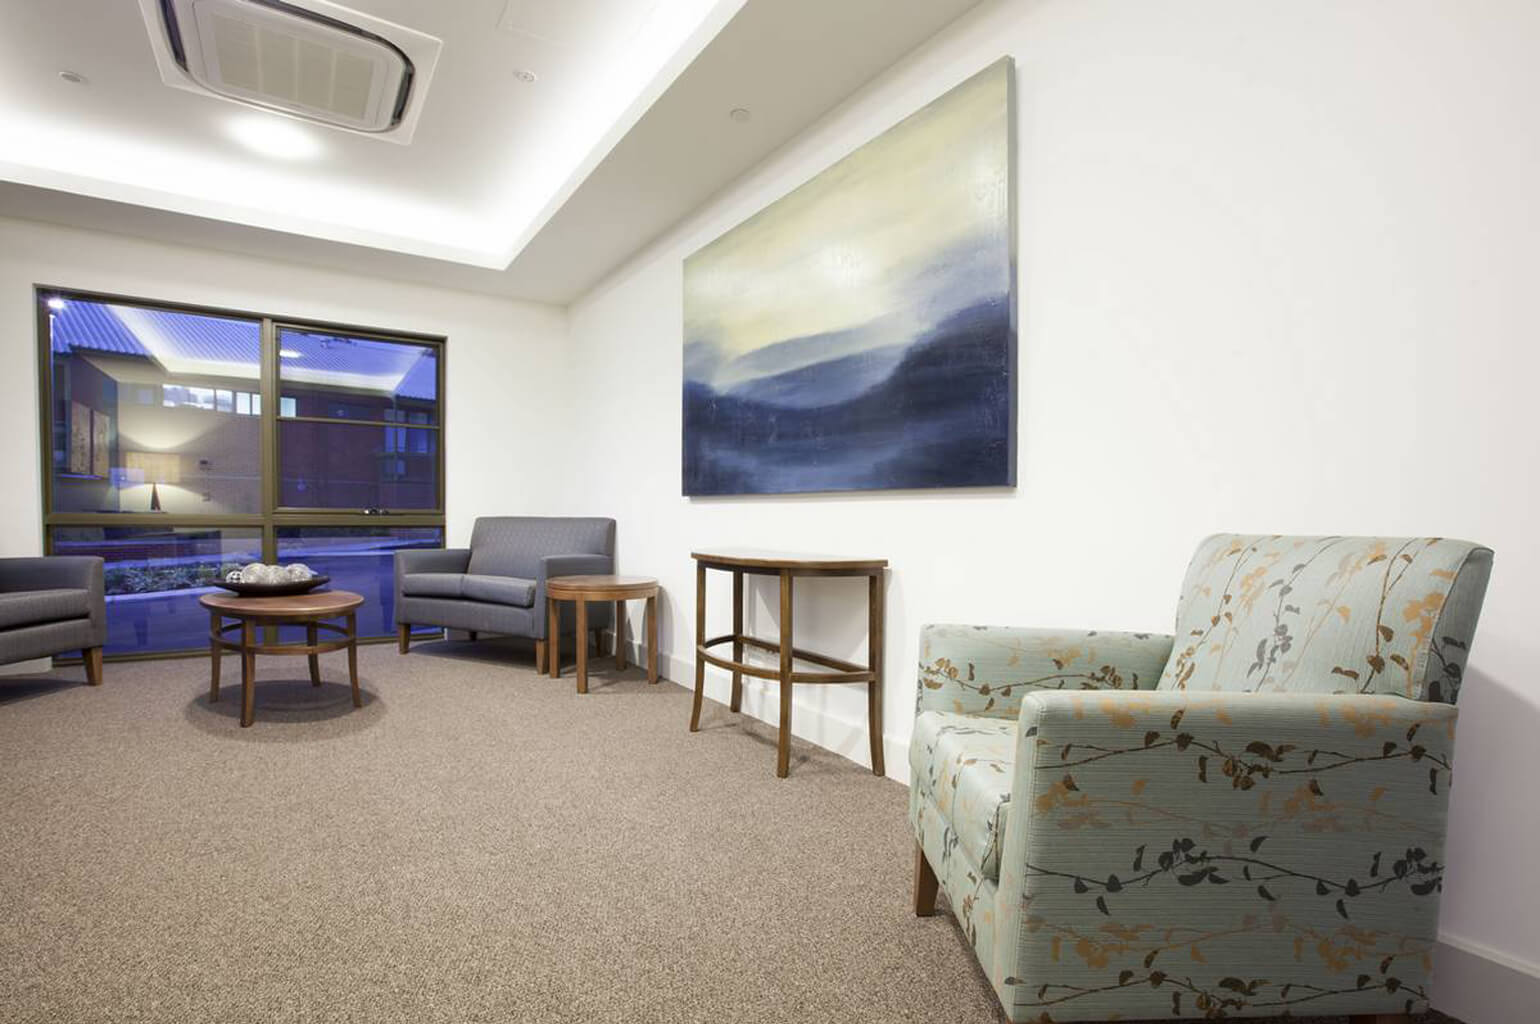 avalon gardens nursing home home design ideas nursing home designs - Veranda Gardens Nursing Home